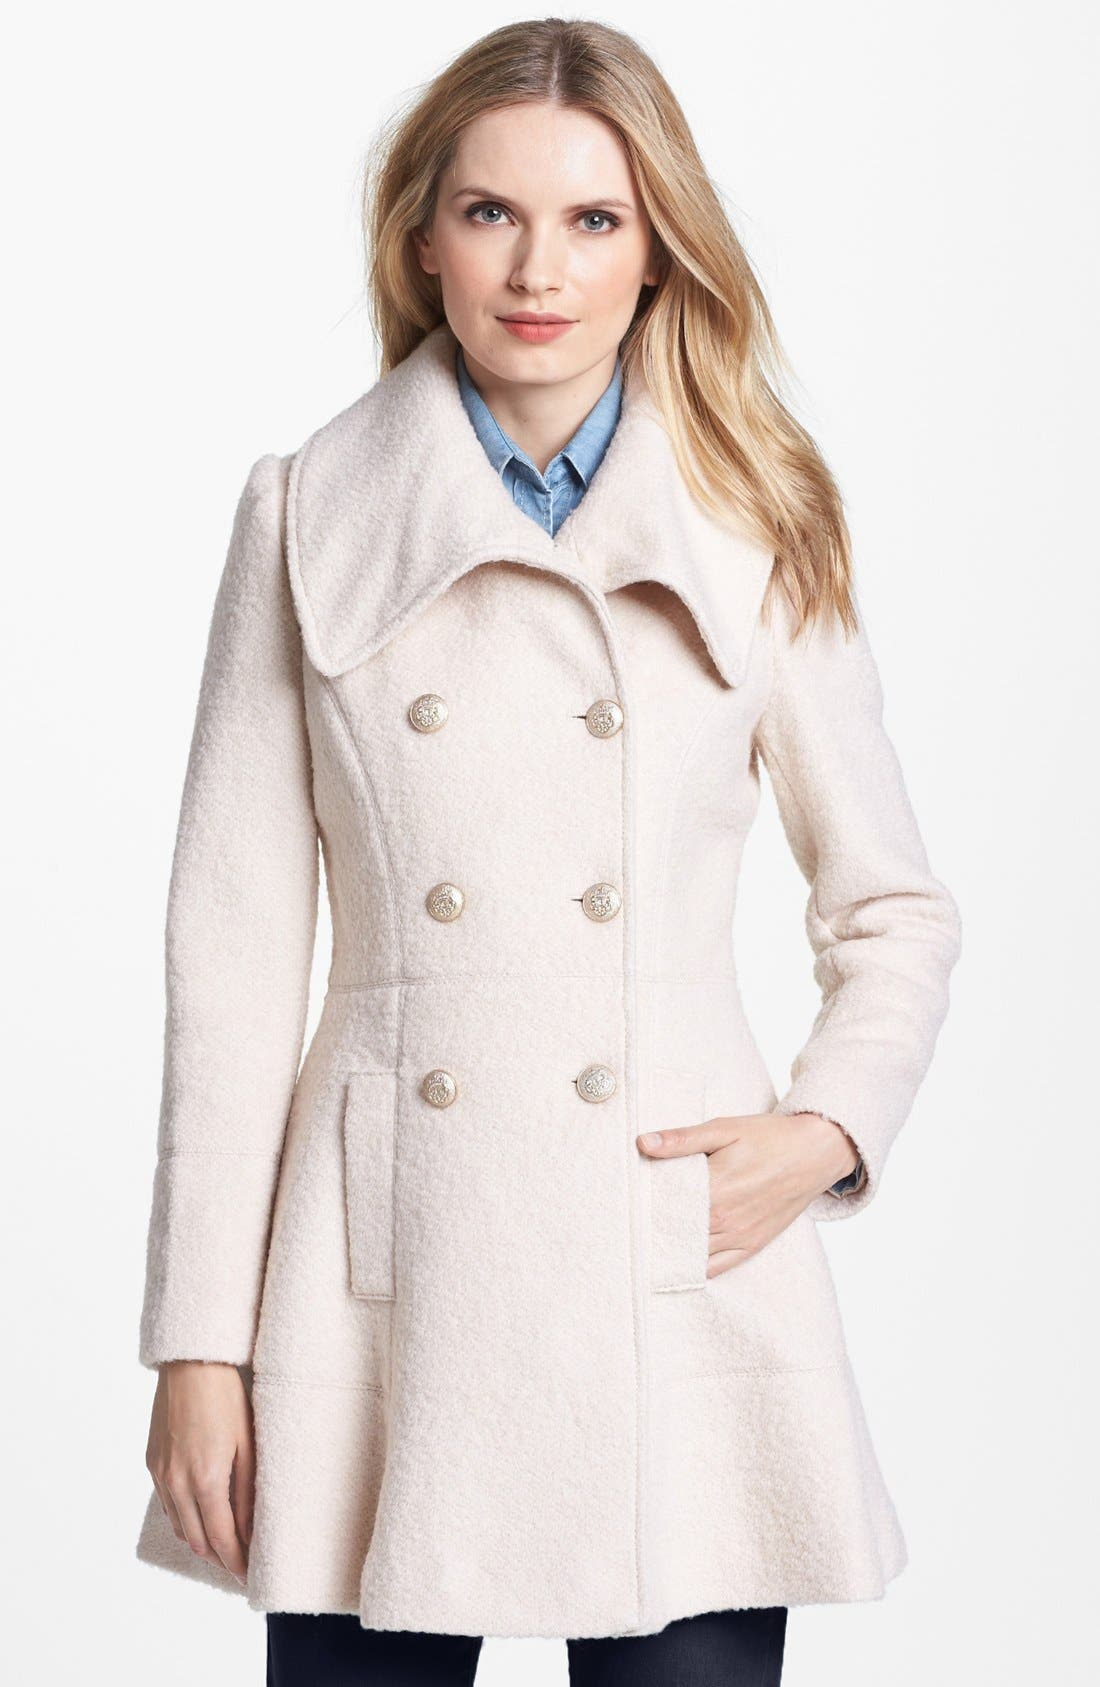 Alternate Image 1 Selected - GUESS Double Breasted Bouclé Coat (Regular & Petite)